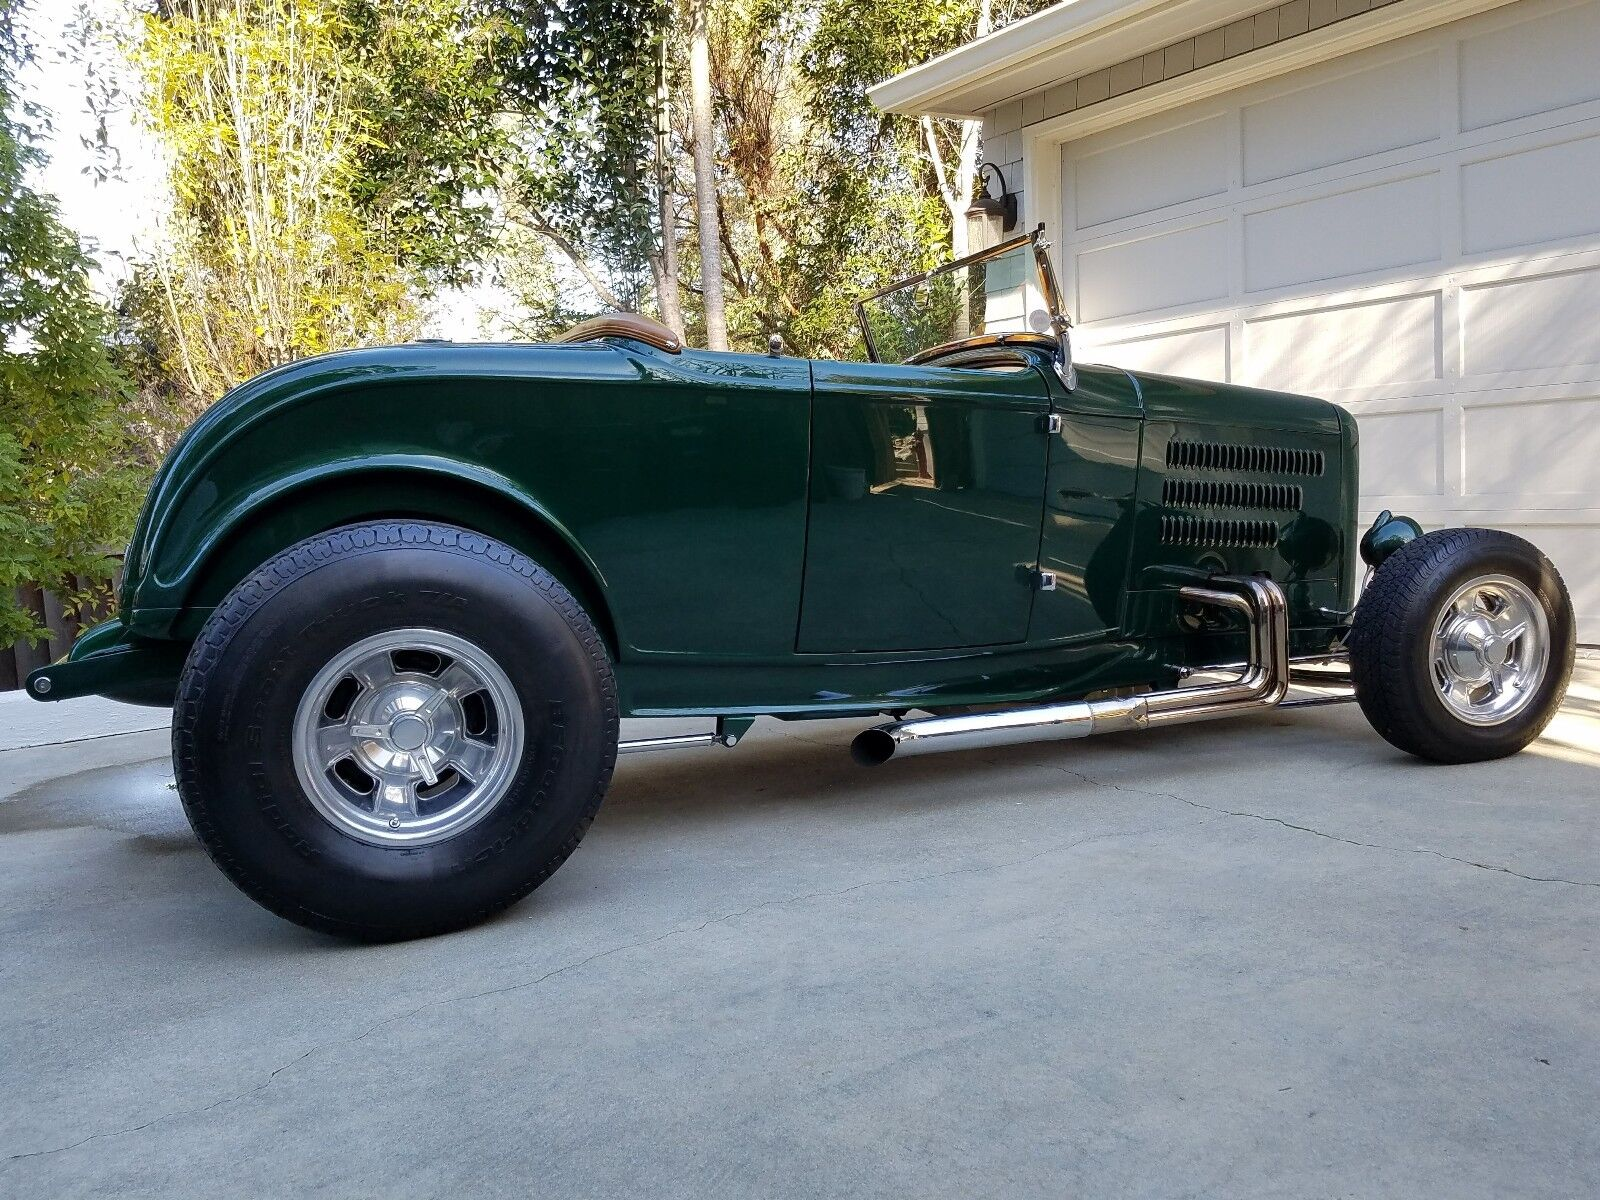 1932 Ford Roadster Street Rod - Used Ford High Boy Roadster for sale ...